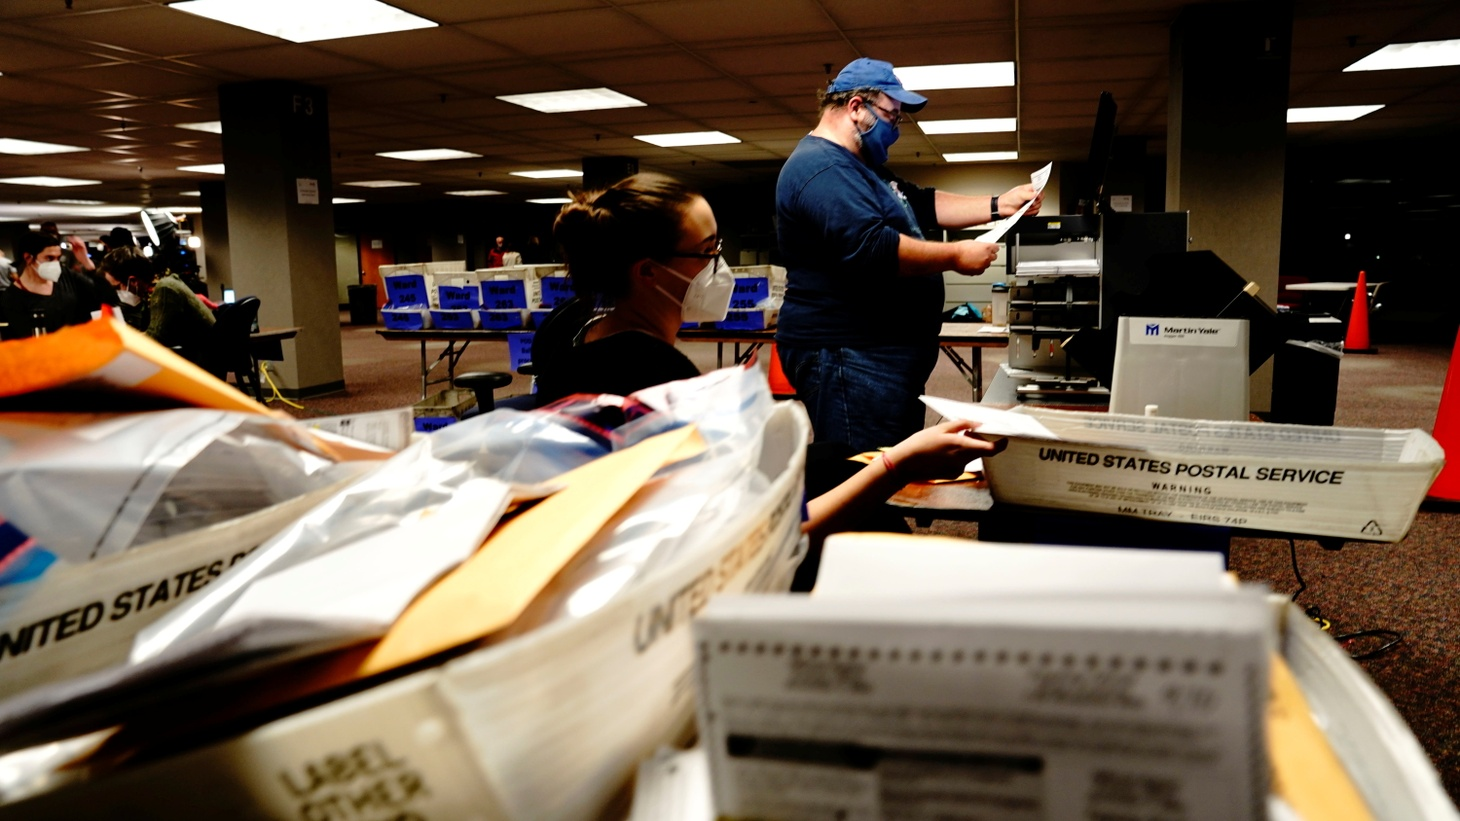 Poll workers Erin Keleske and Brett Rohlwing use a tabulator machine to process absentee ballots the night of Election Day at Milwaukee Central Count in Milwaukee, Wisconsin, U.S., November 3, 2020.